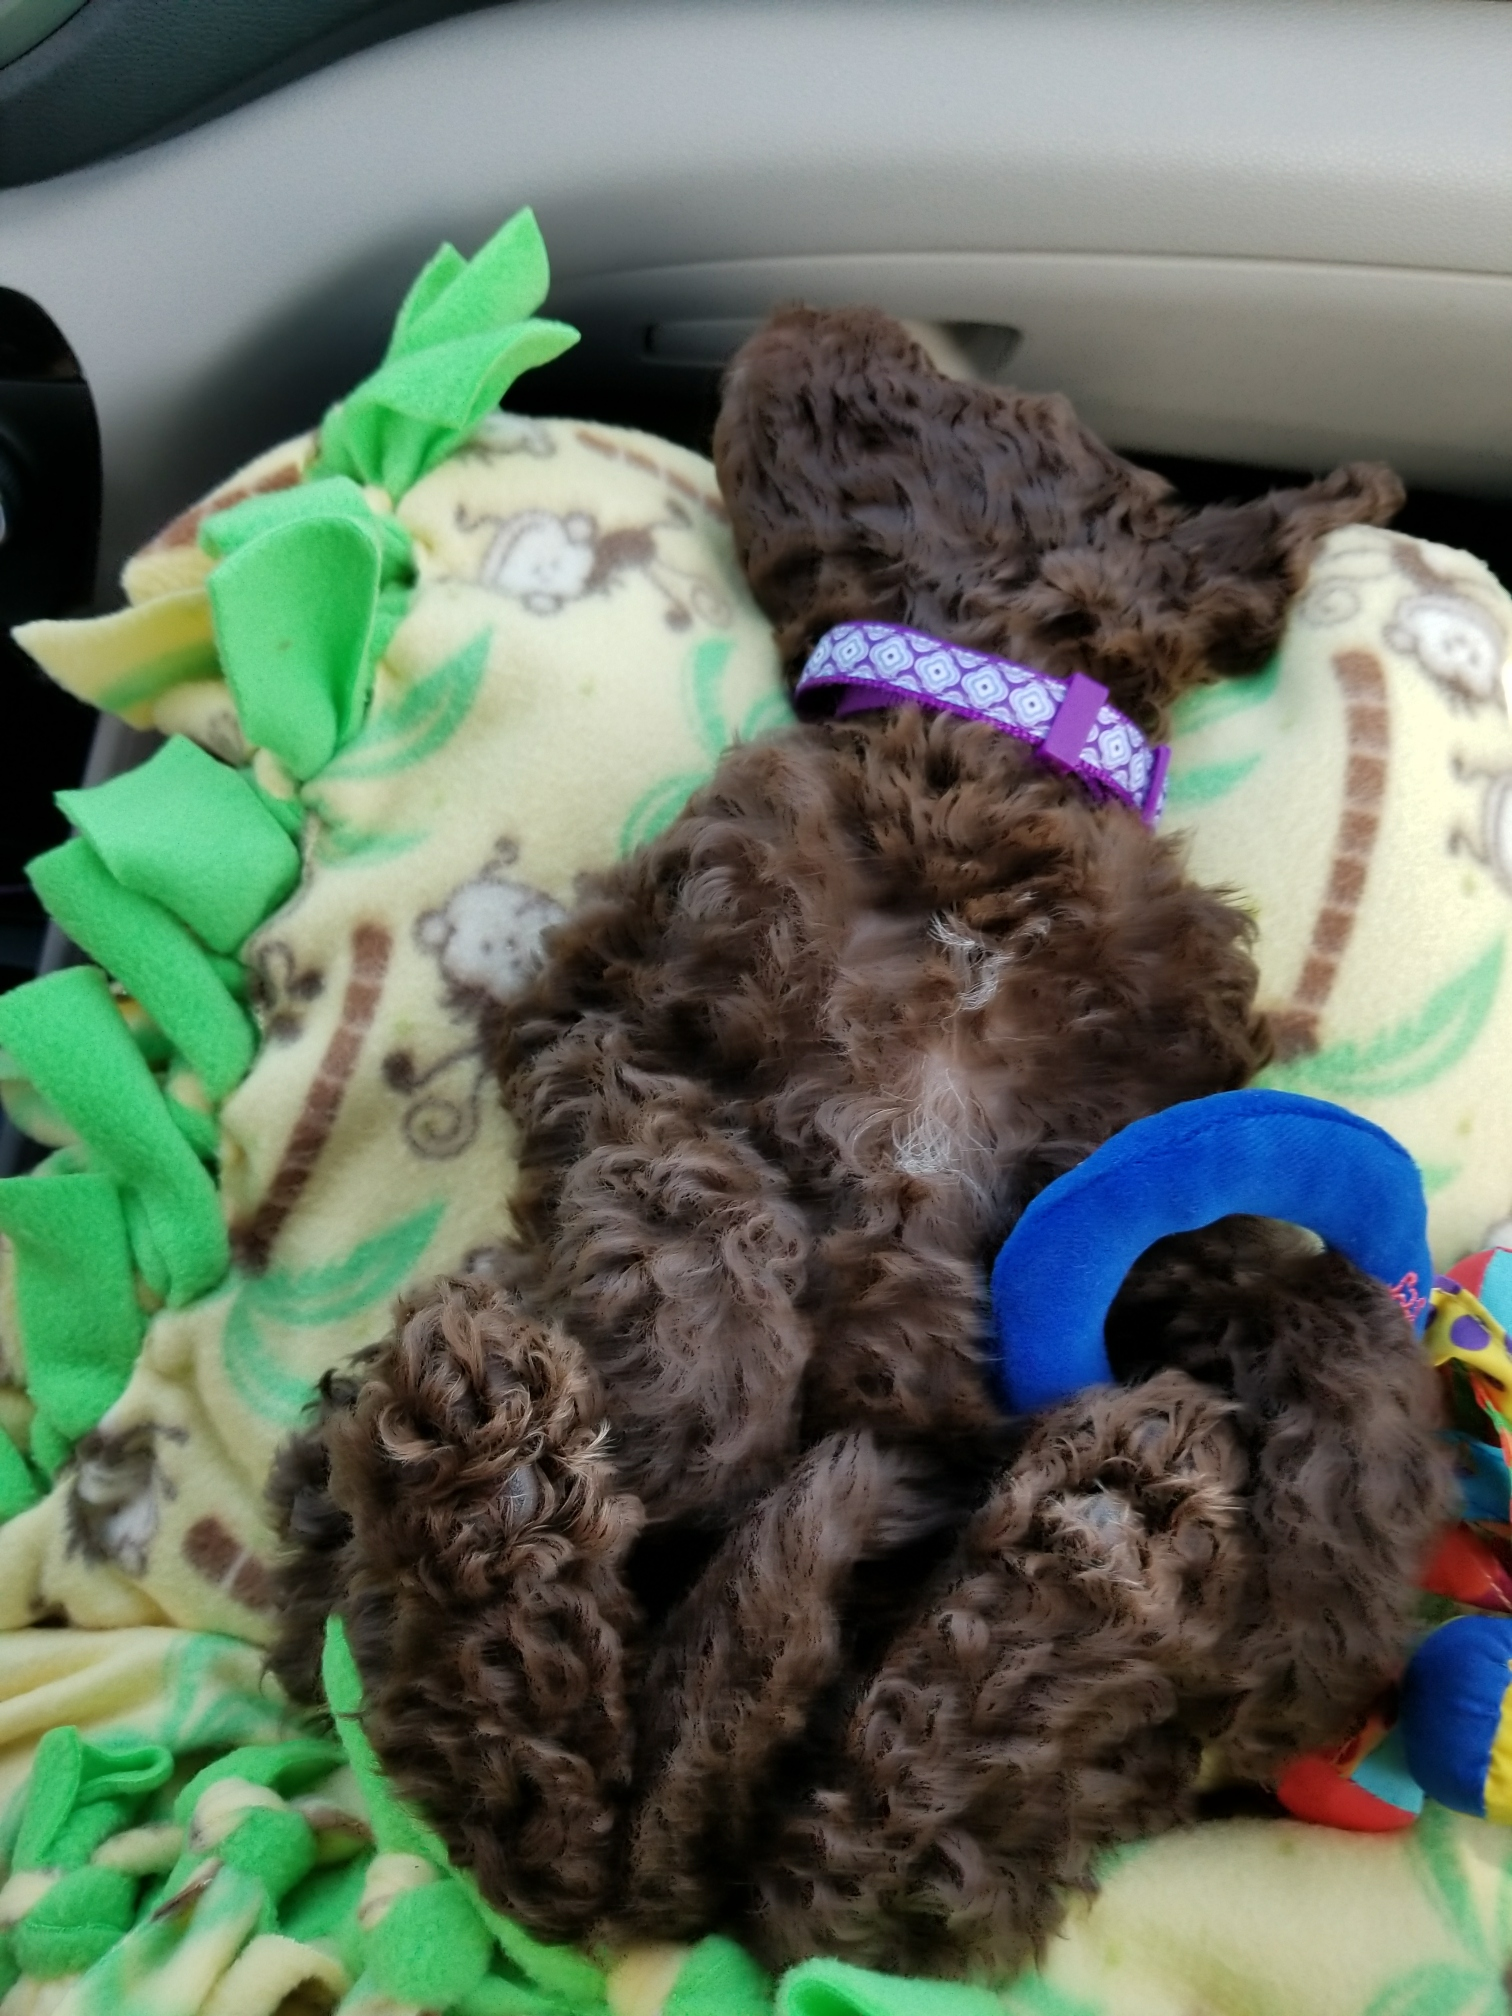 Mini Chocolate Aussiedoodle - Goose - 8 wks old Going Home!